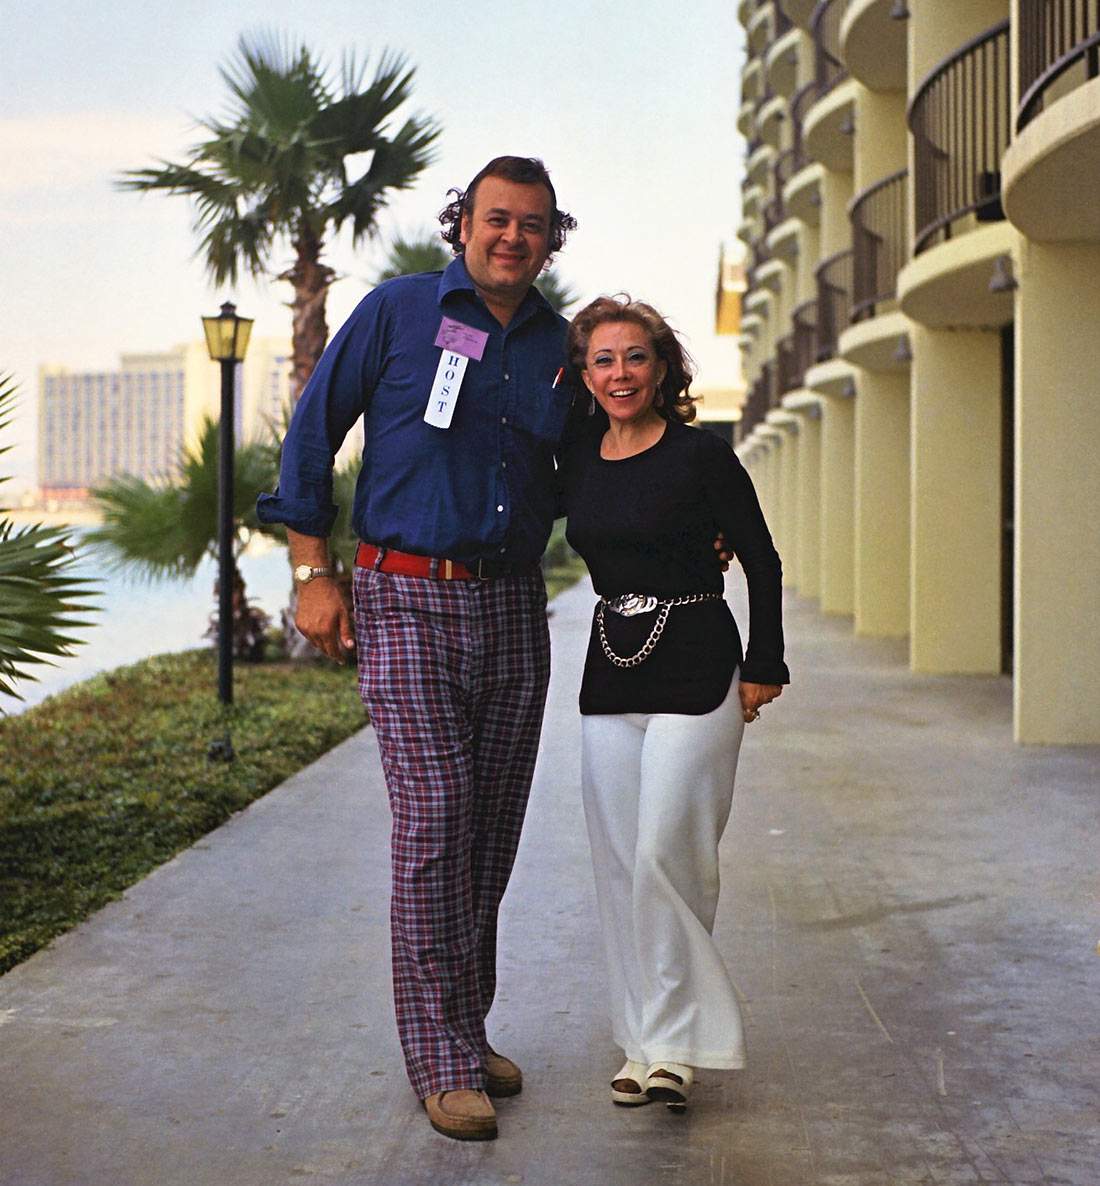 June Foray with Shel Dorf, founder of the San Diego Comic-Con, 1973.